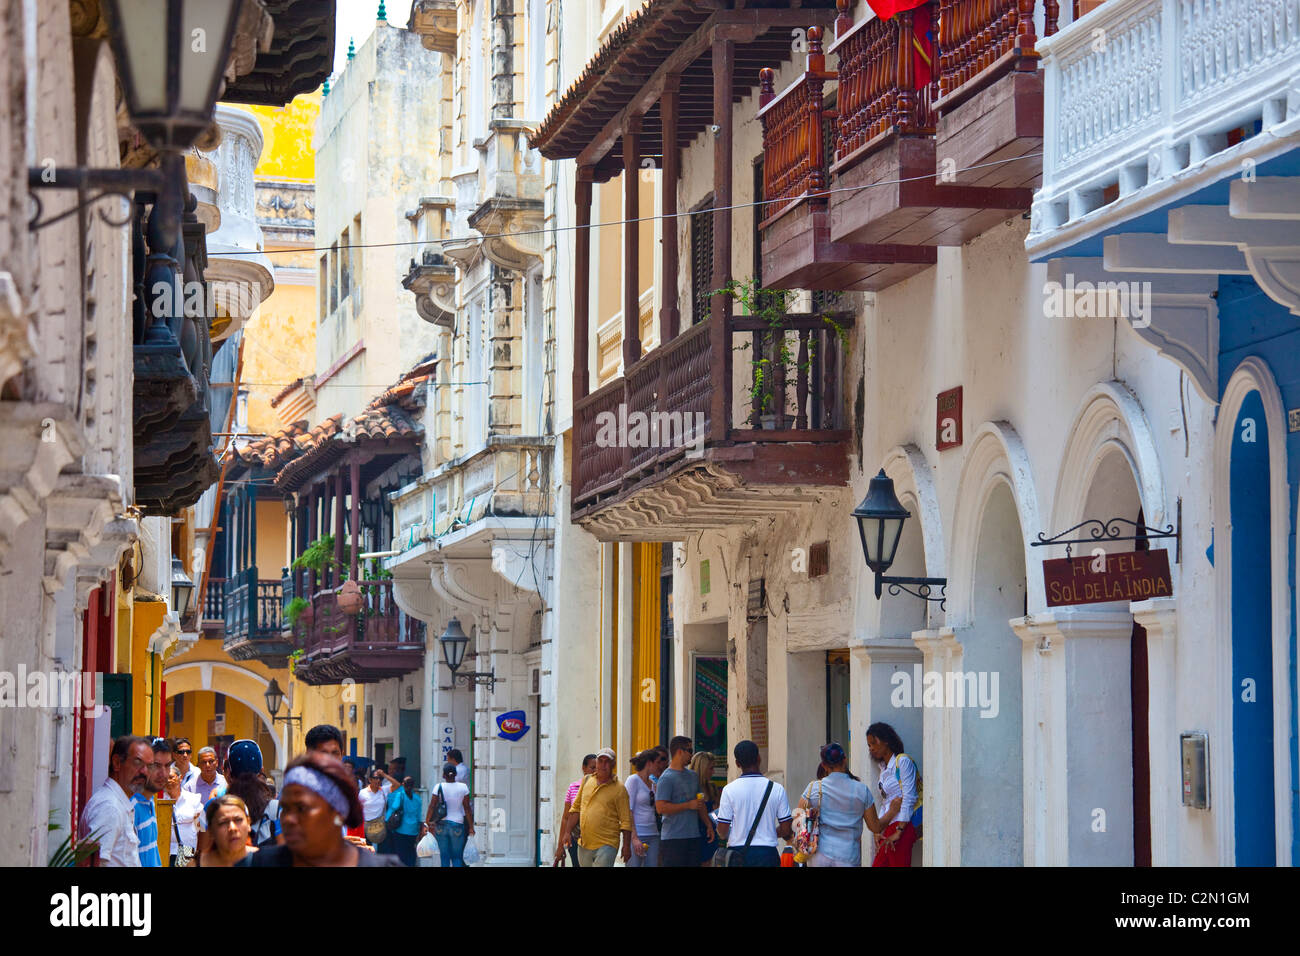 Old town, Cartagena, Colombia - Stock Image